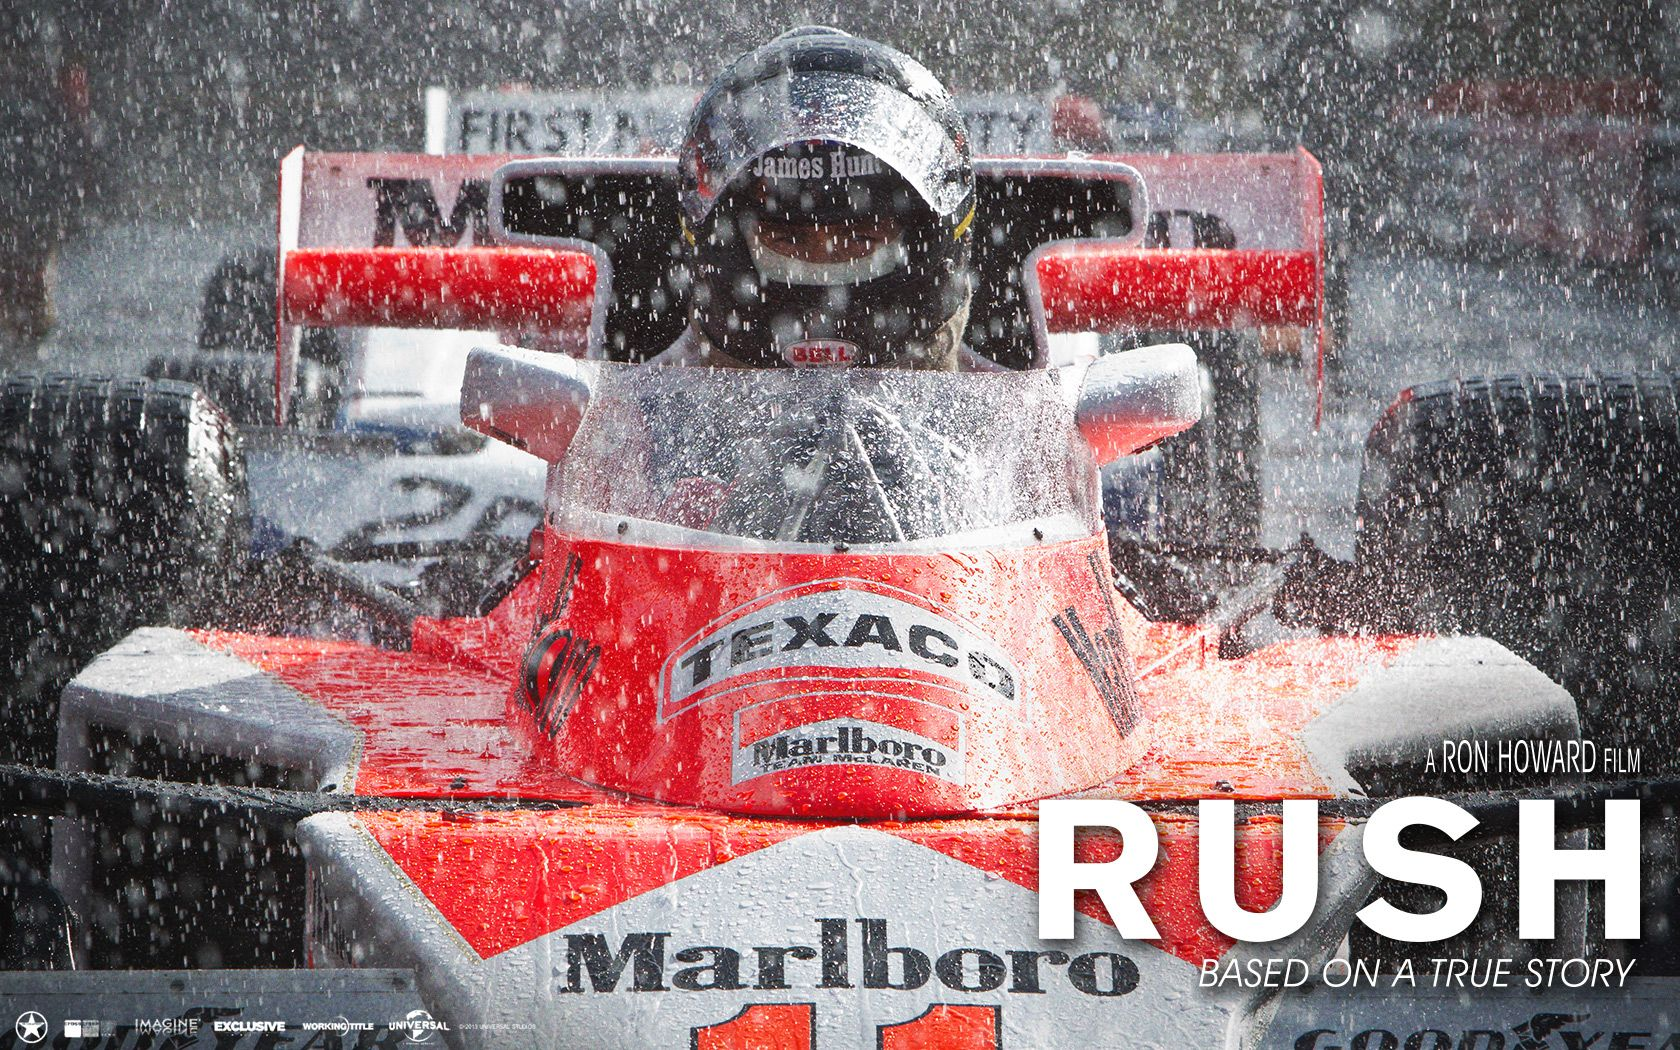 Racing Car Hd Wallpaper Free Download The F1 Racing Car Rush Wallpapper Live Hd Wallpapers